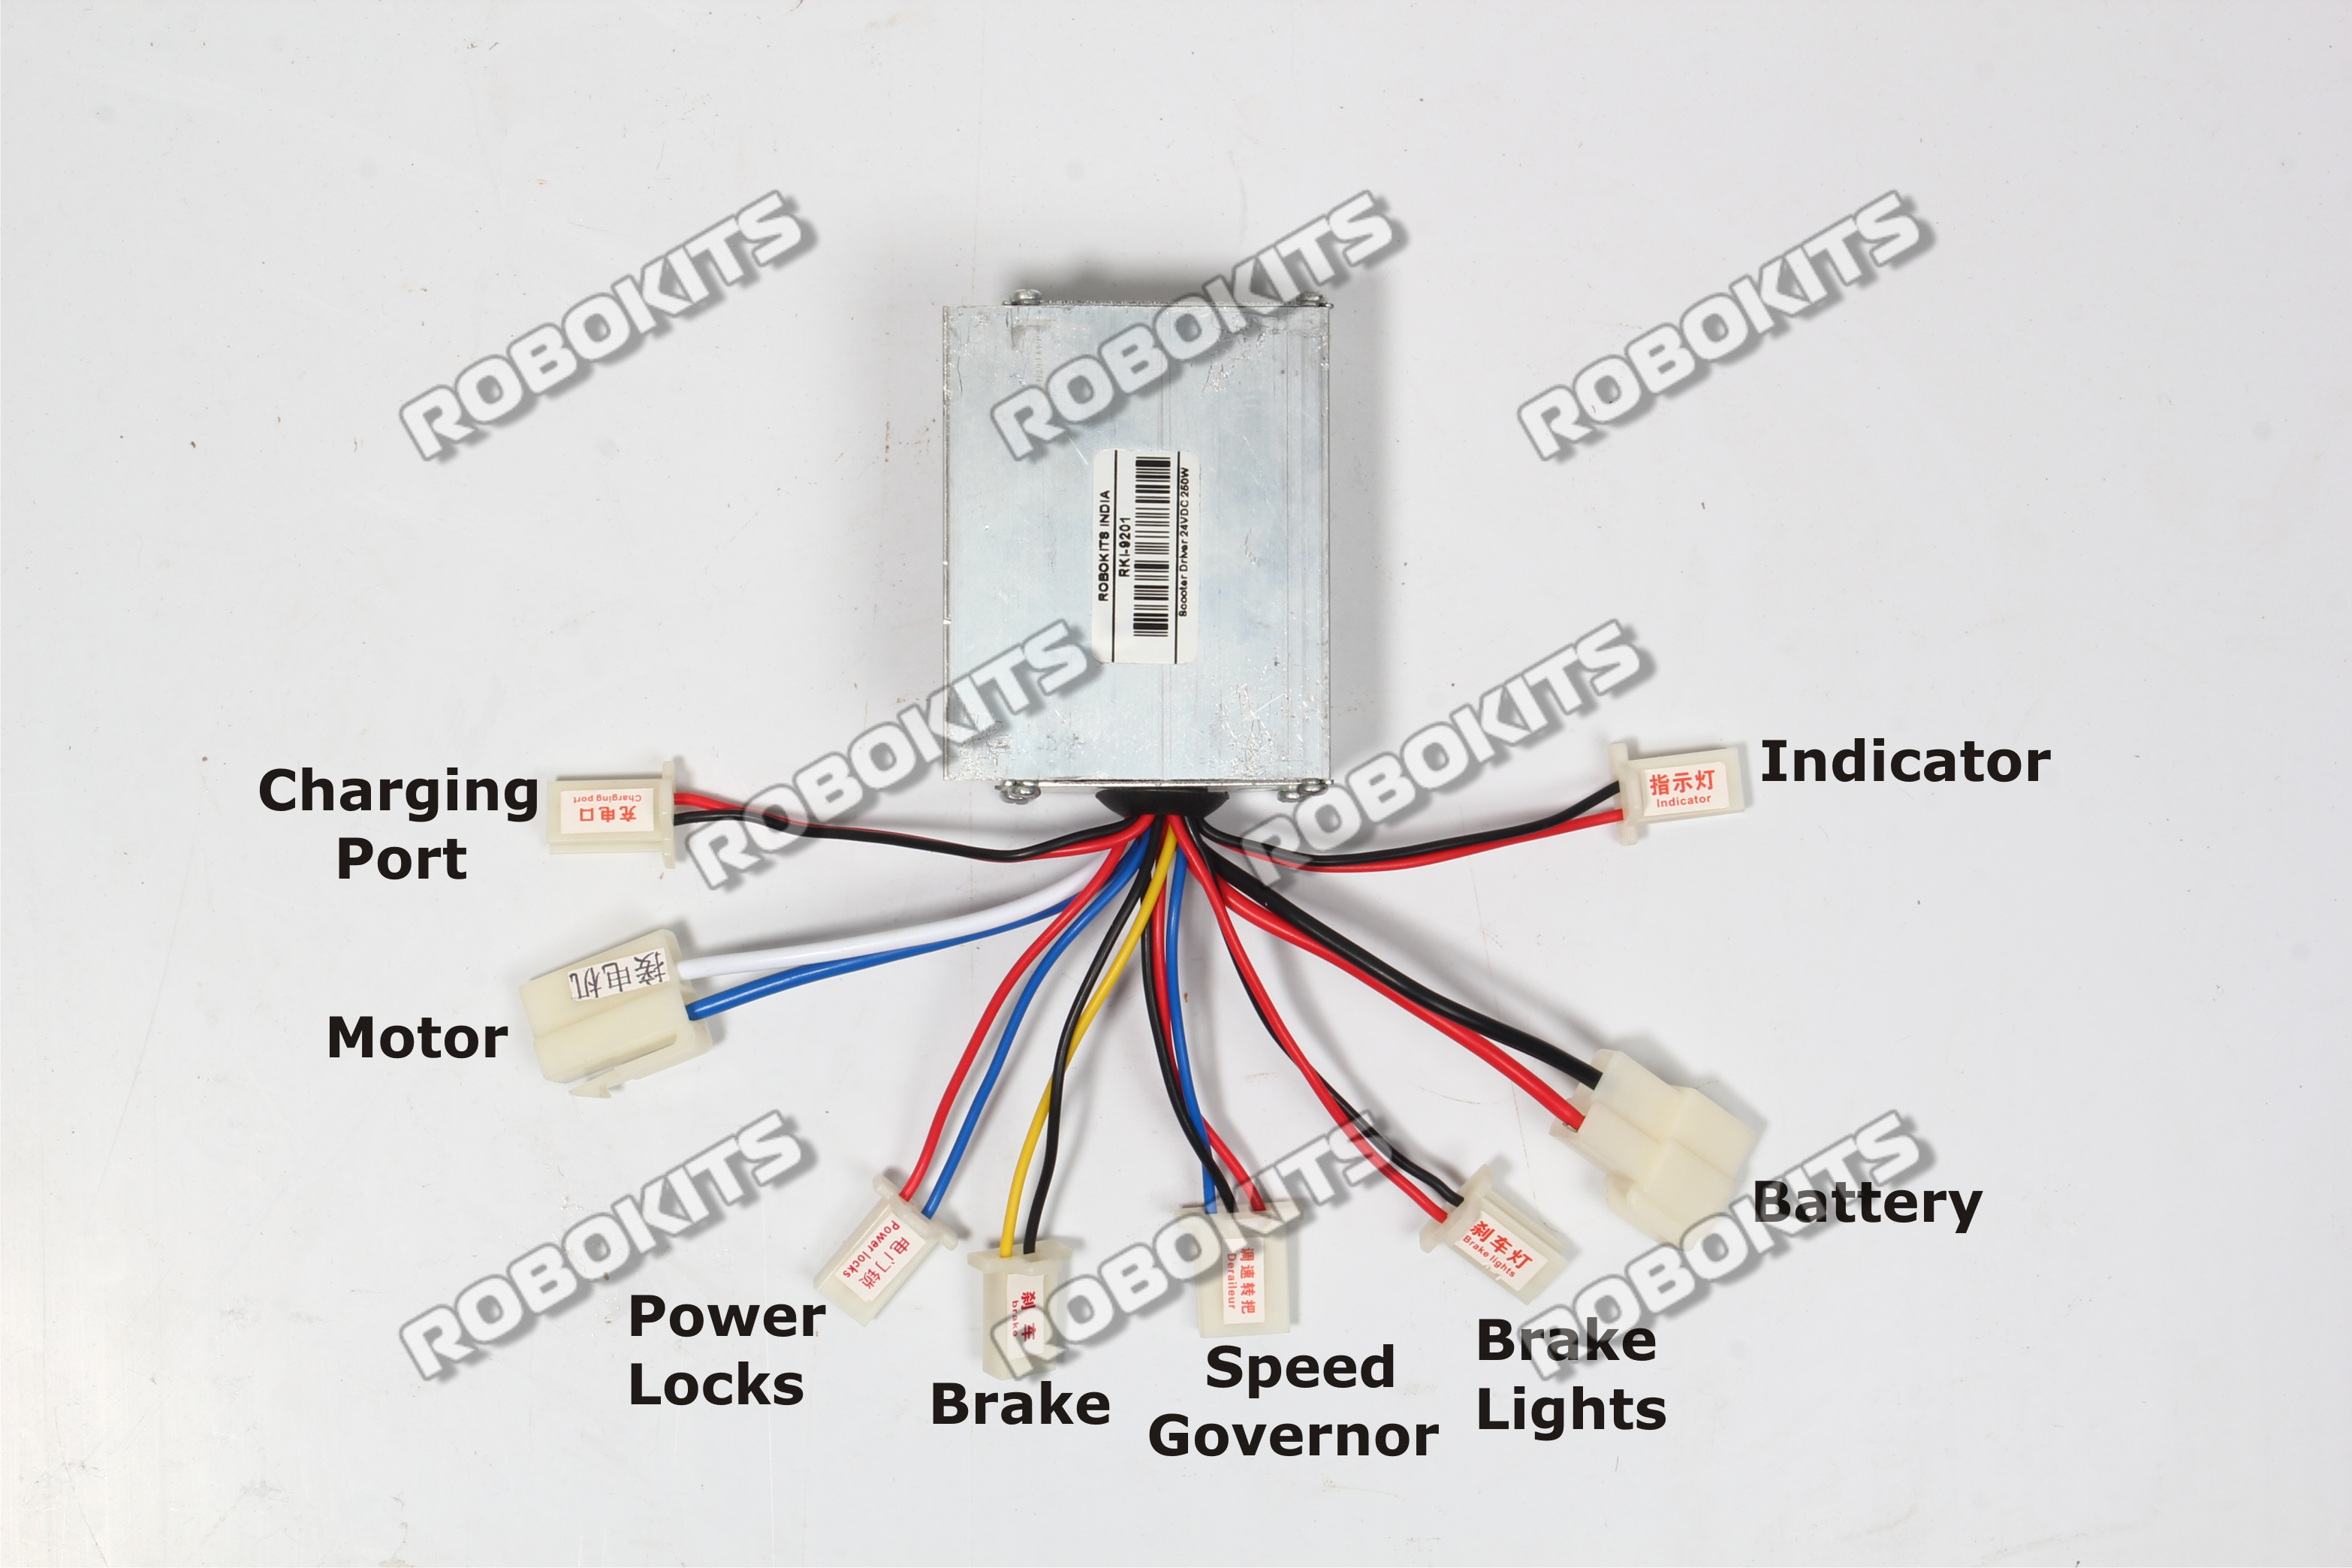 EBike Motor Electric Speed Controller 24V 250W  RKI9201      70000   Robokits India  Easy to